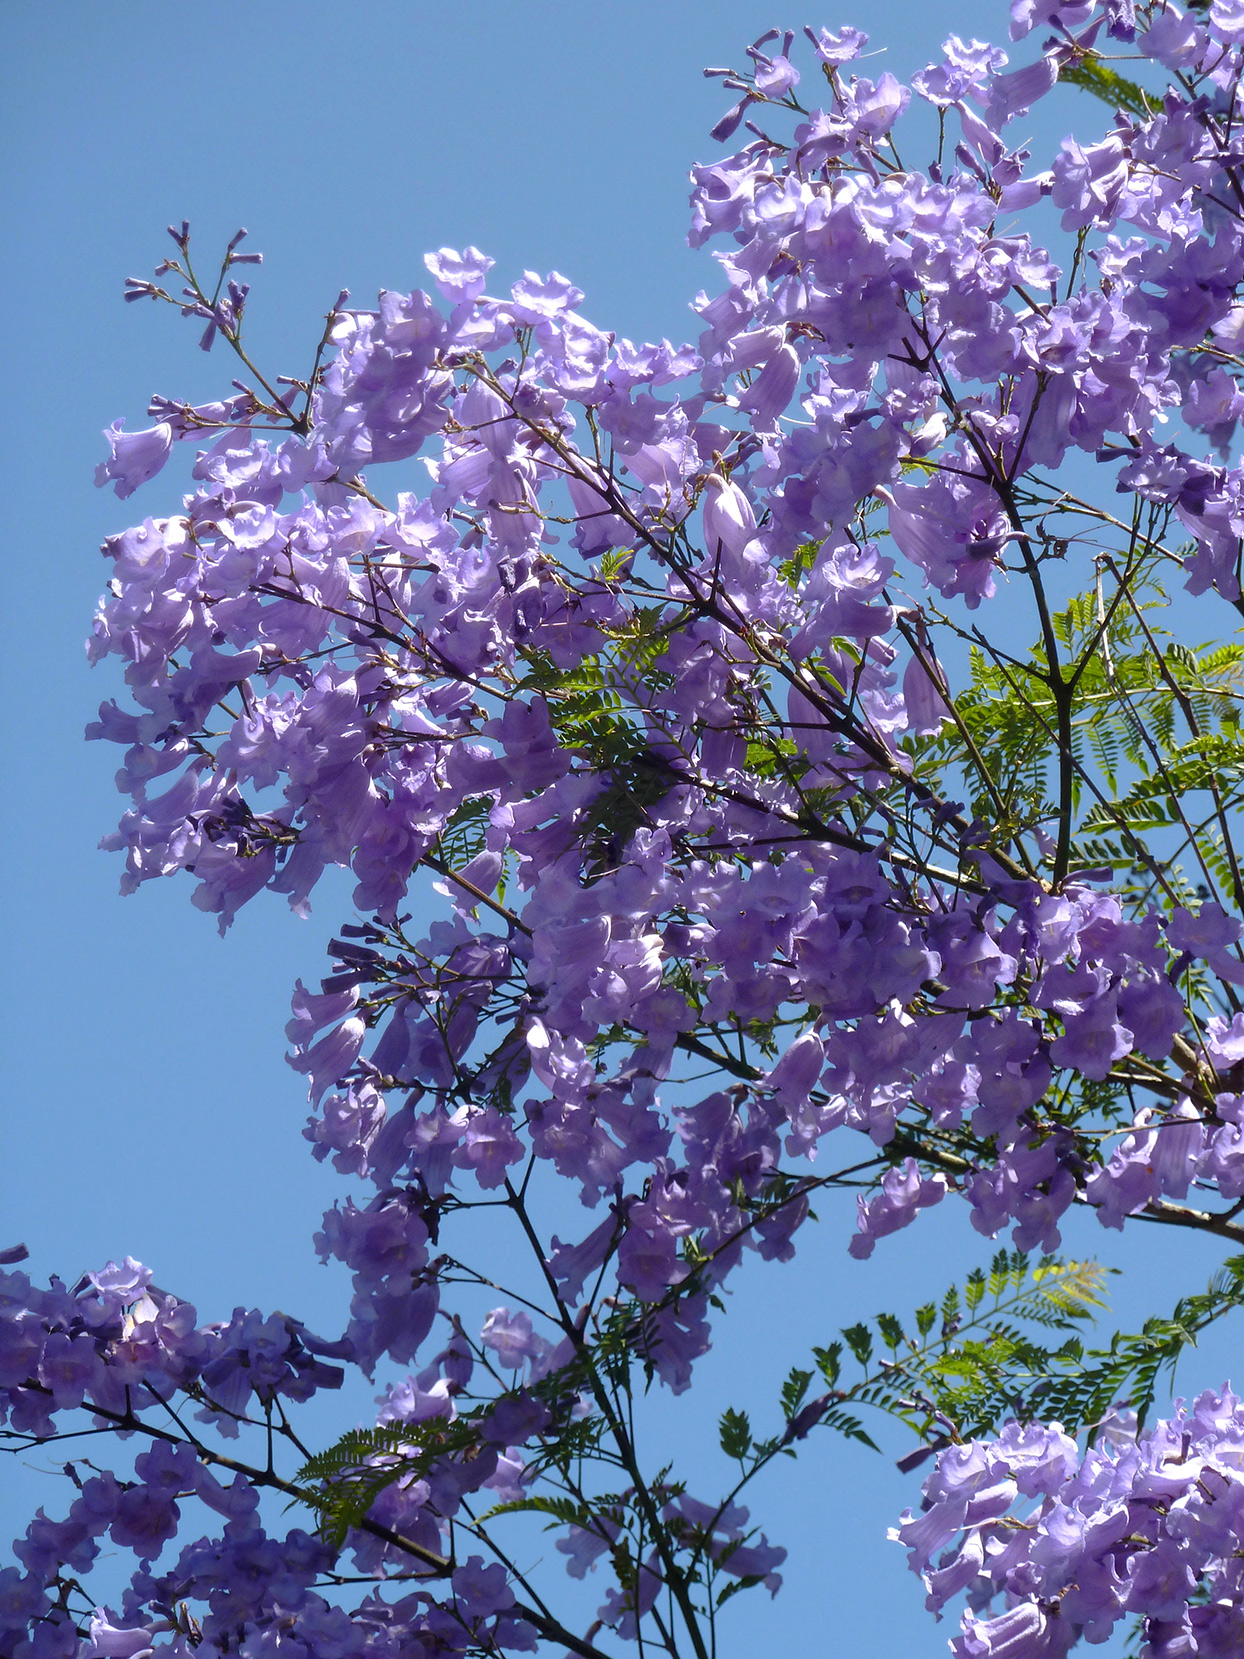 Jacaranda Trees Are Blooming Right Now in Southern California